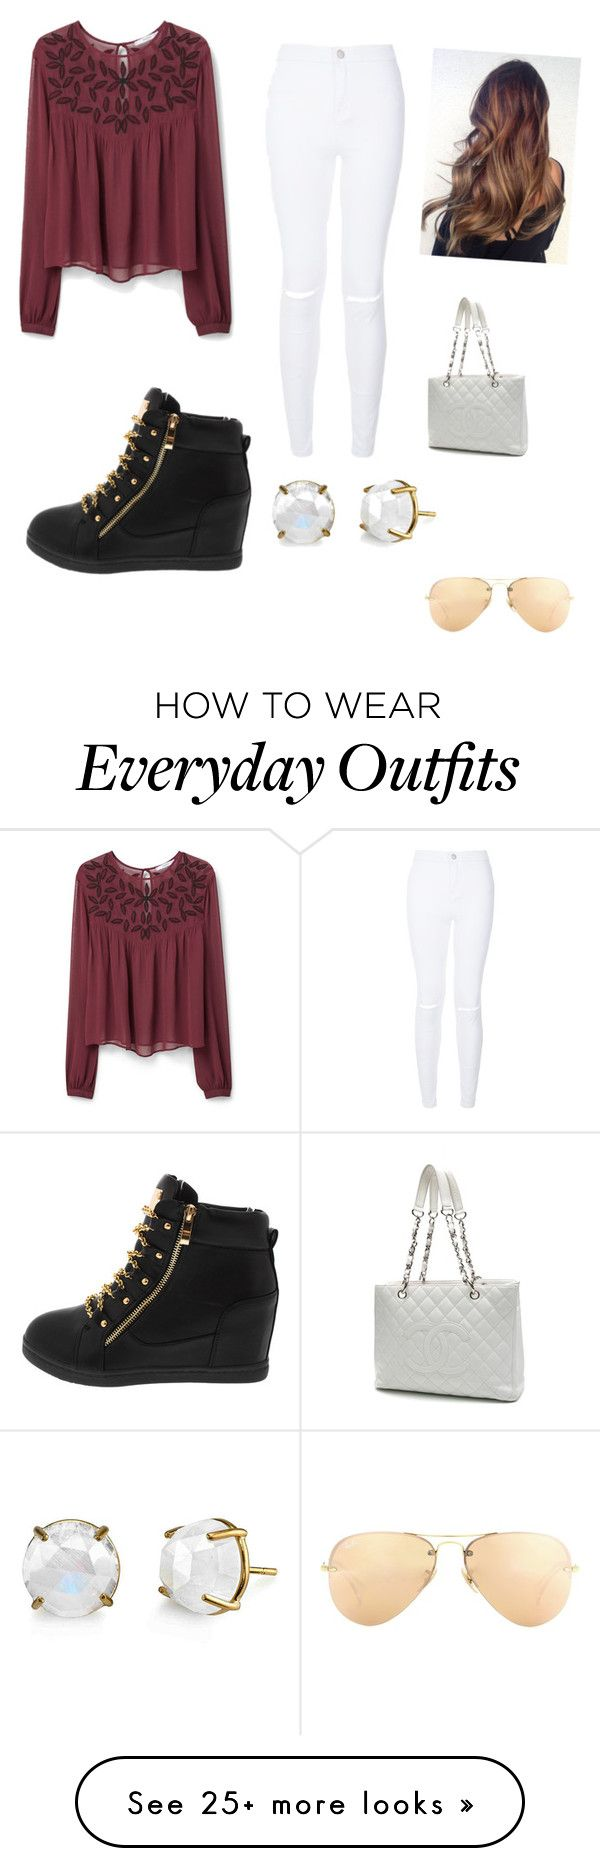 Everyday outfit by marinadelossantos on Polyvore featuring MANGO, Chanel, Ray-Ban, womens clothing, women, female, woman, misses and juniors